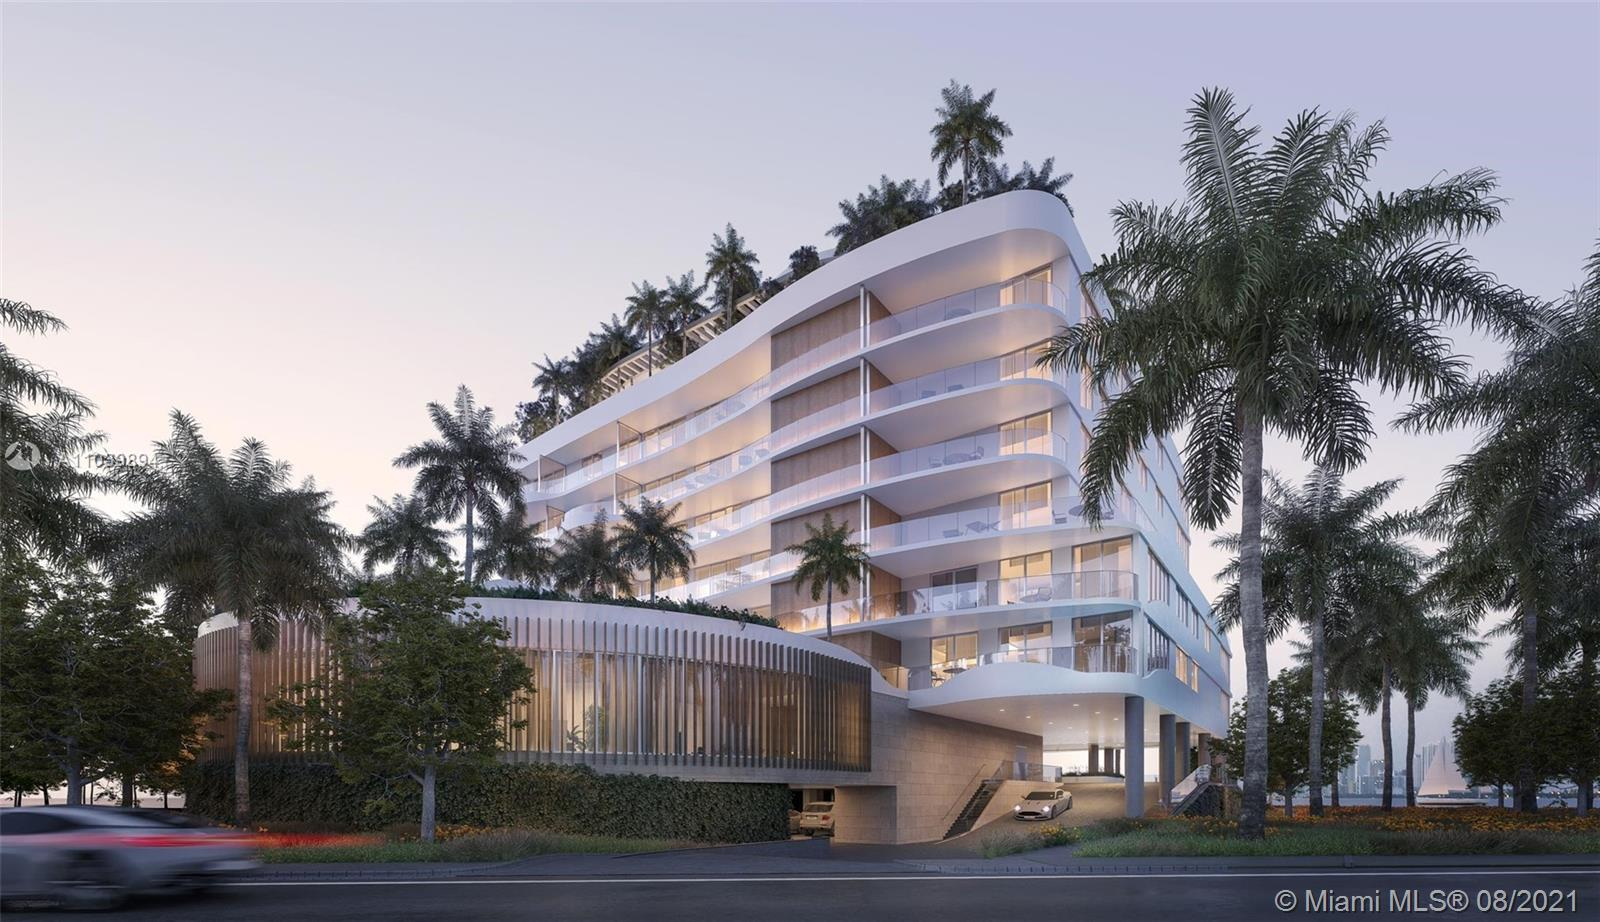 Forty-one luxurious bayfront residences in Bay Harbor Islands inspired by the shimmering waters of Florida and all of the pleasure and possibilities that North Miami Beach has to offer. Designed by award-winning Arquitectonica and landscaped by Enzo Enea, Onda is the latest real estate project by Valerio Morabito and Ugo Colombo.